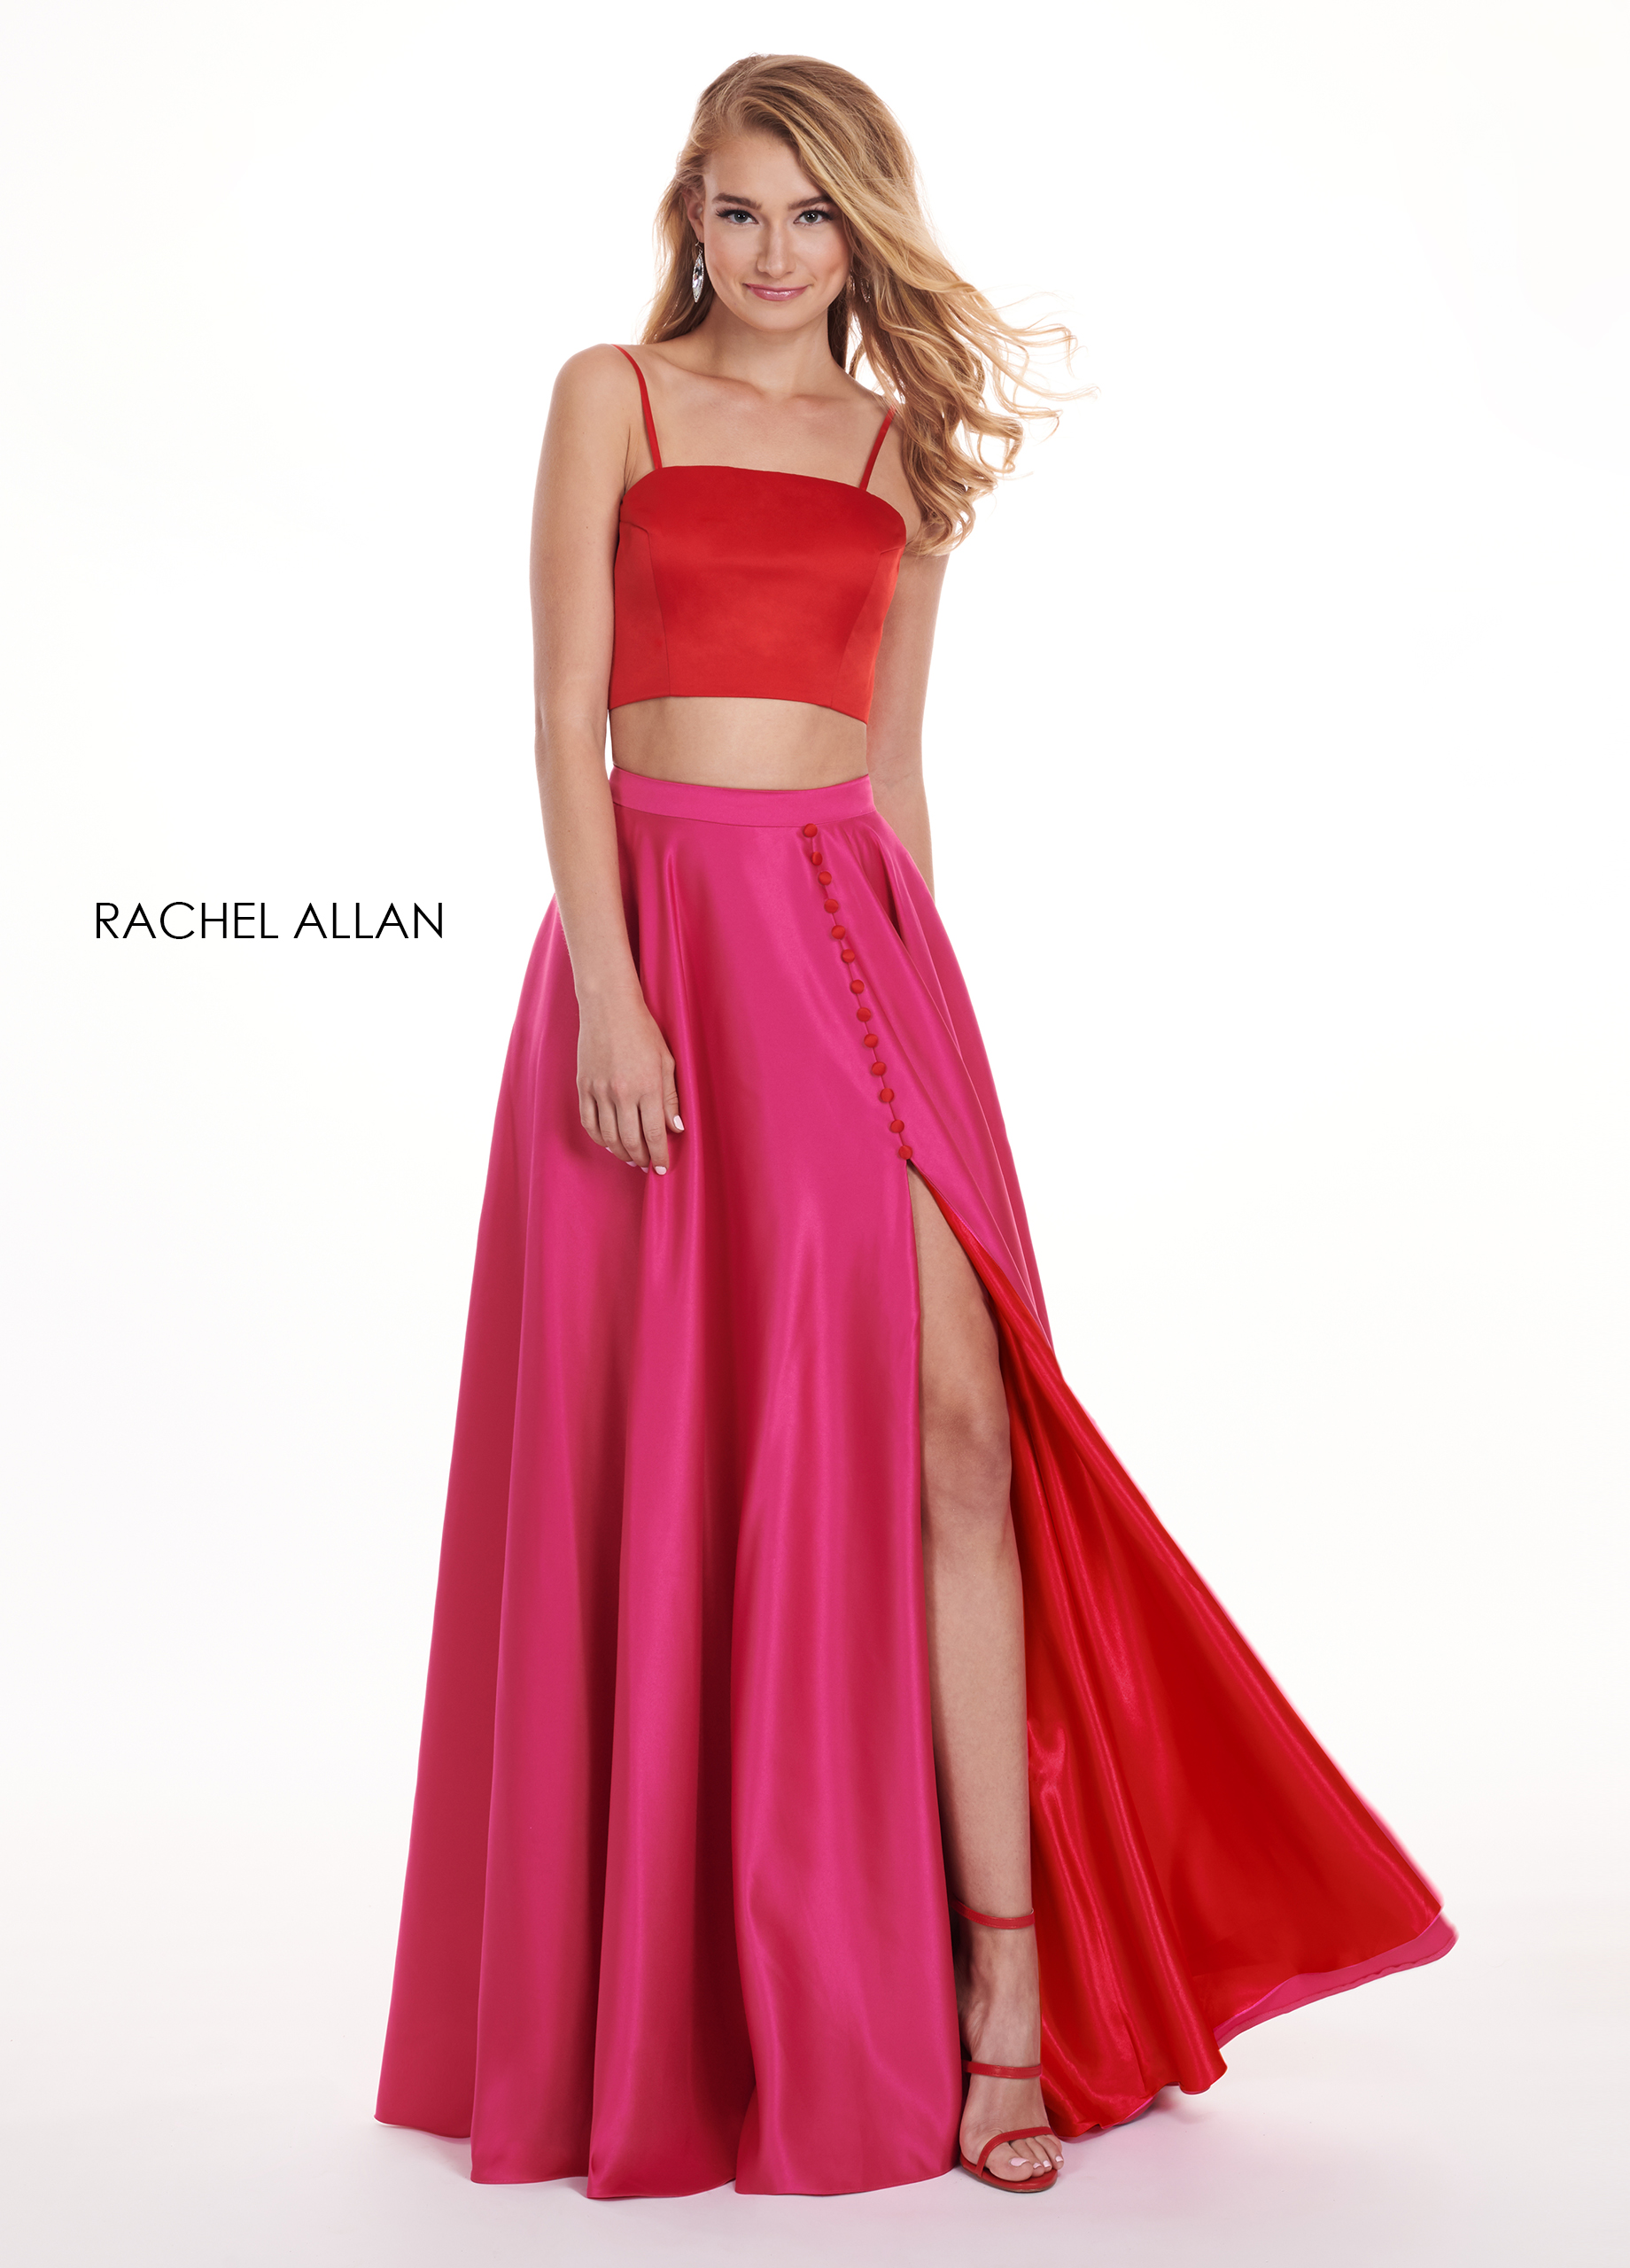 Strappy Two-Piece Prom Dresses in Red Color